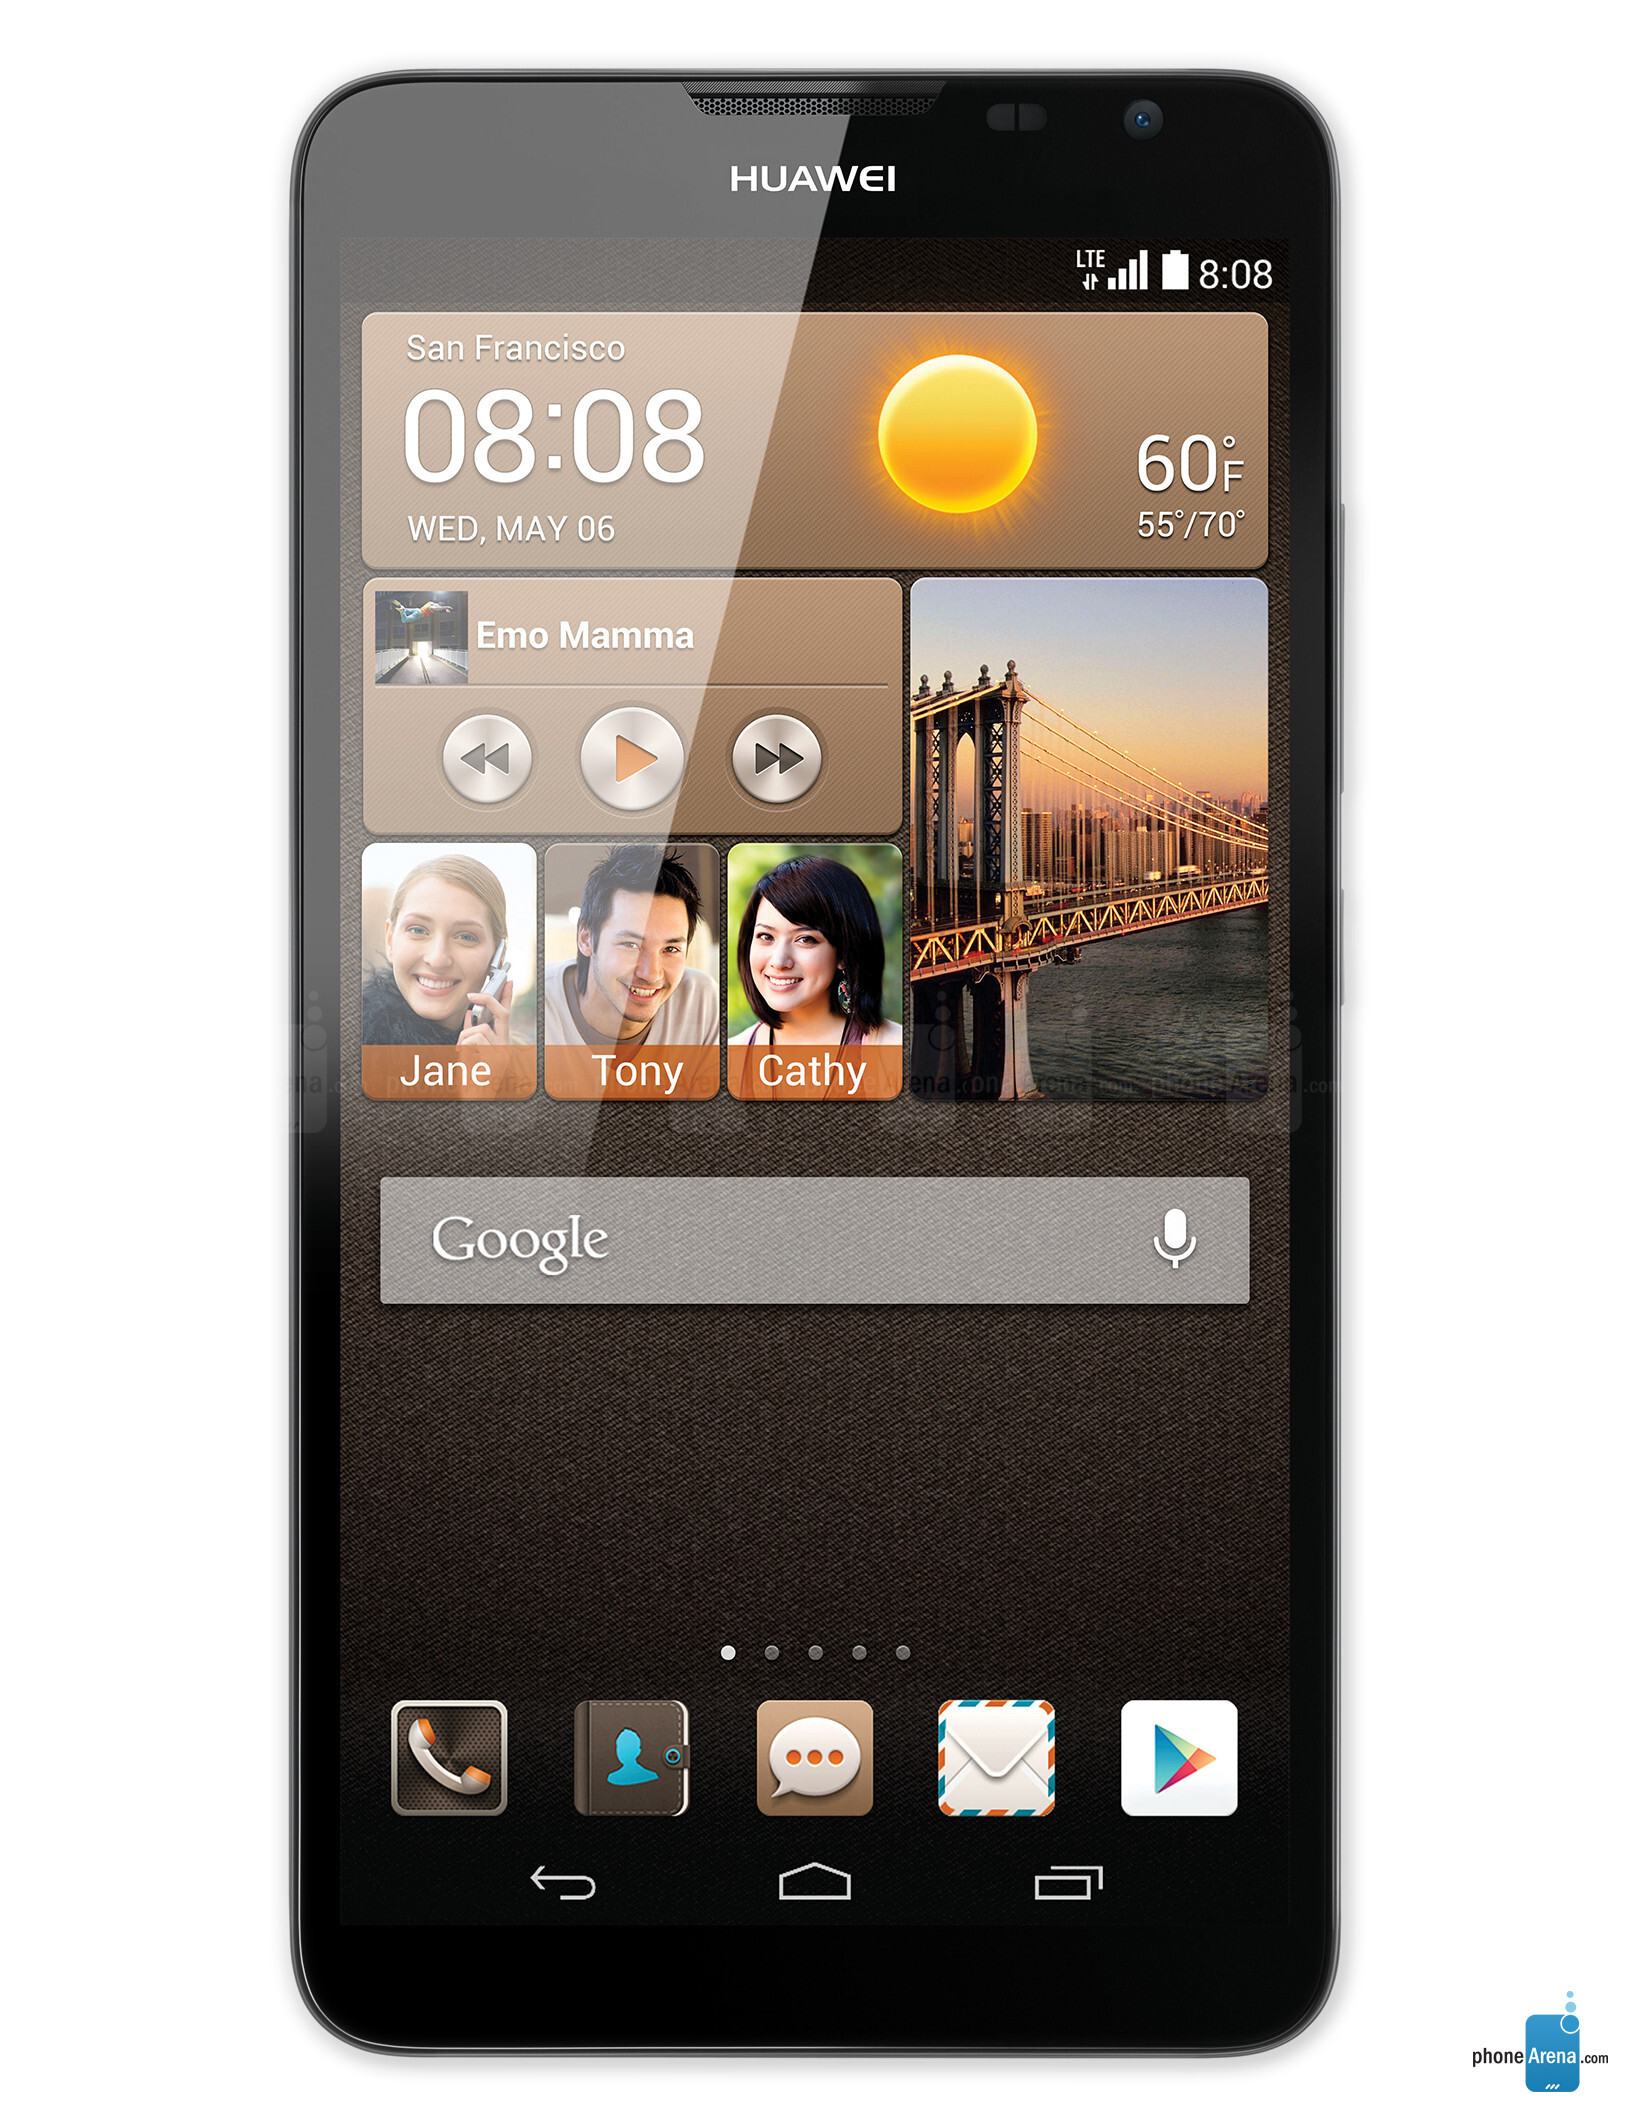 Huawei Ascend Mate 2 4G specs